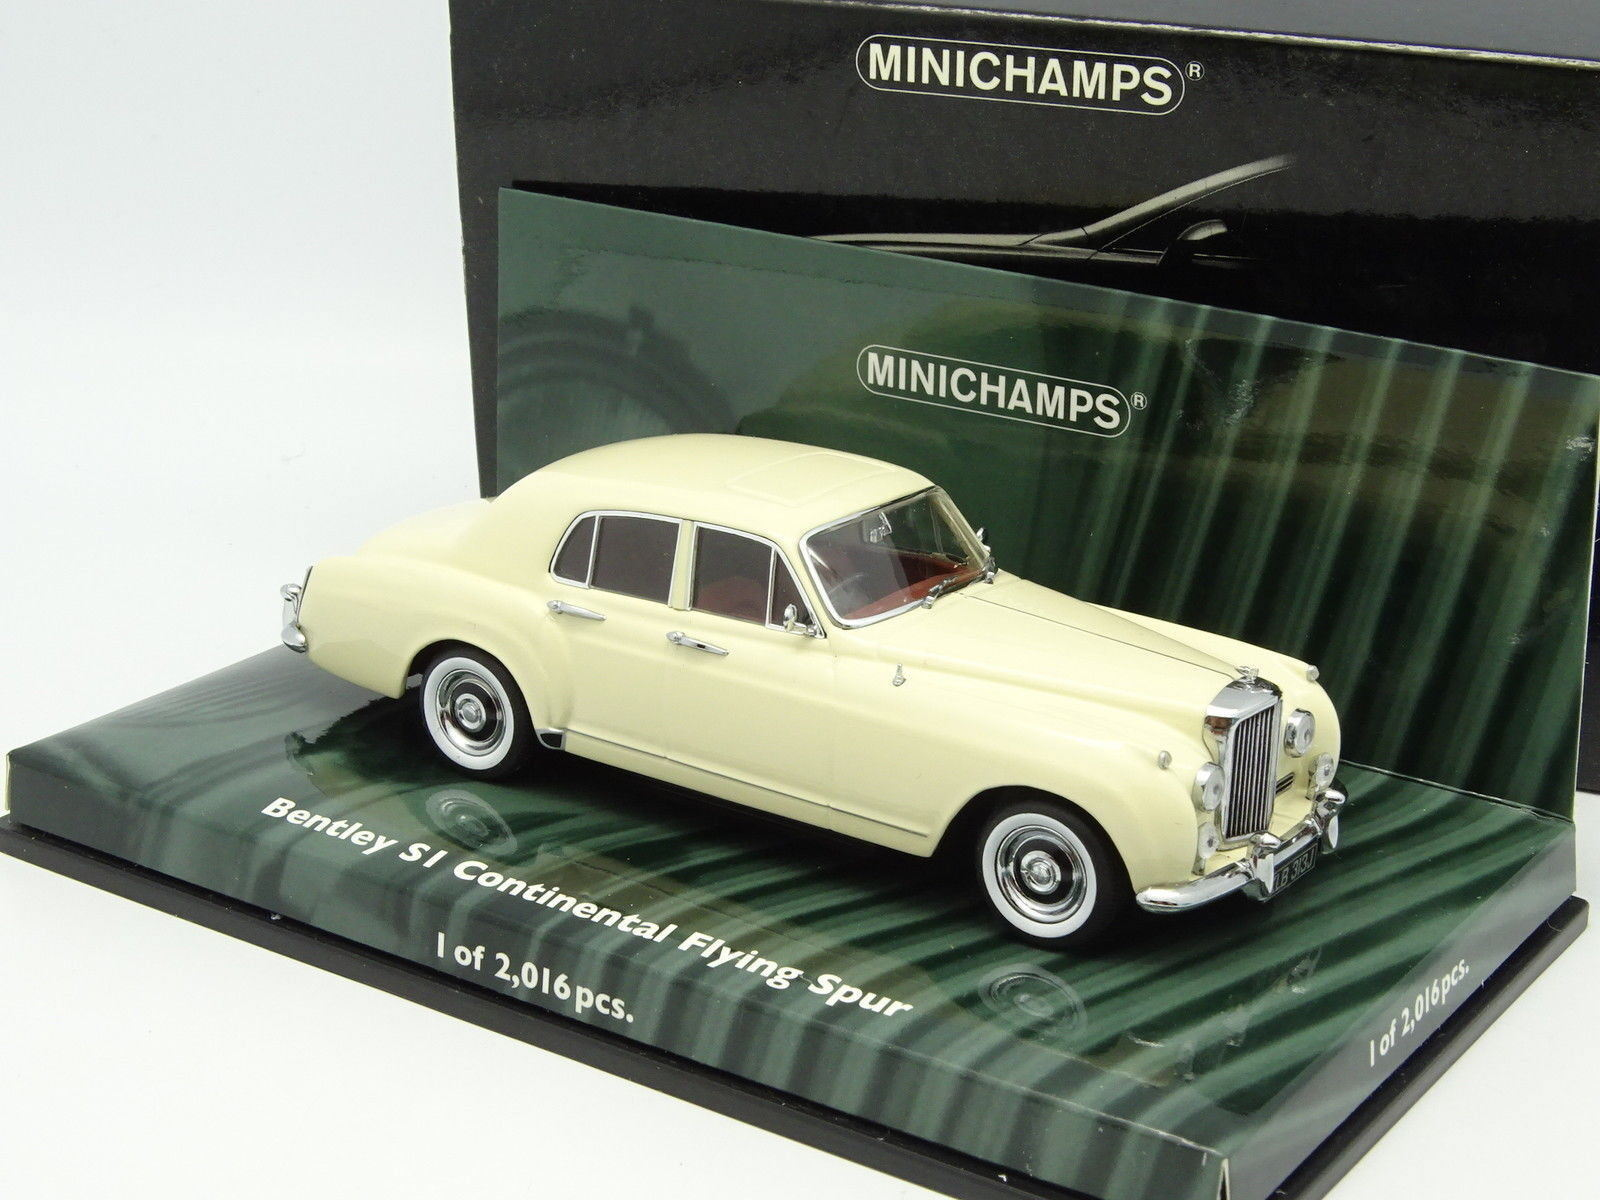 Minichamps 1 43 - Bentley S1 Continental Fliegening Spur Weißhe